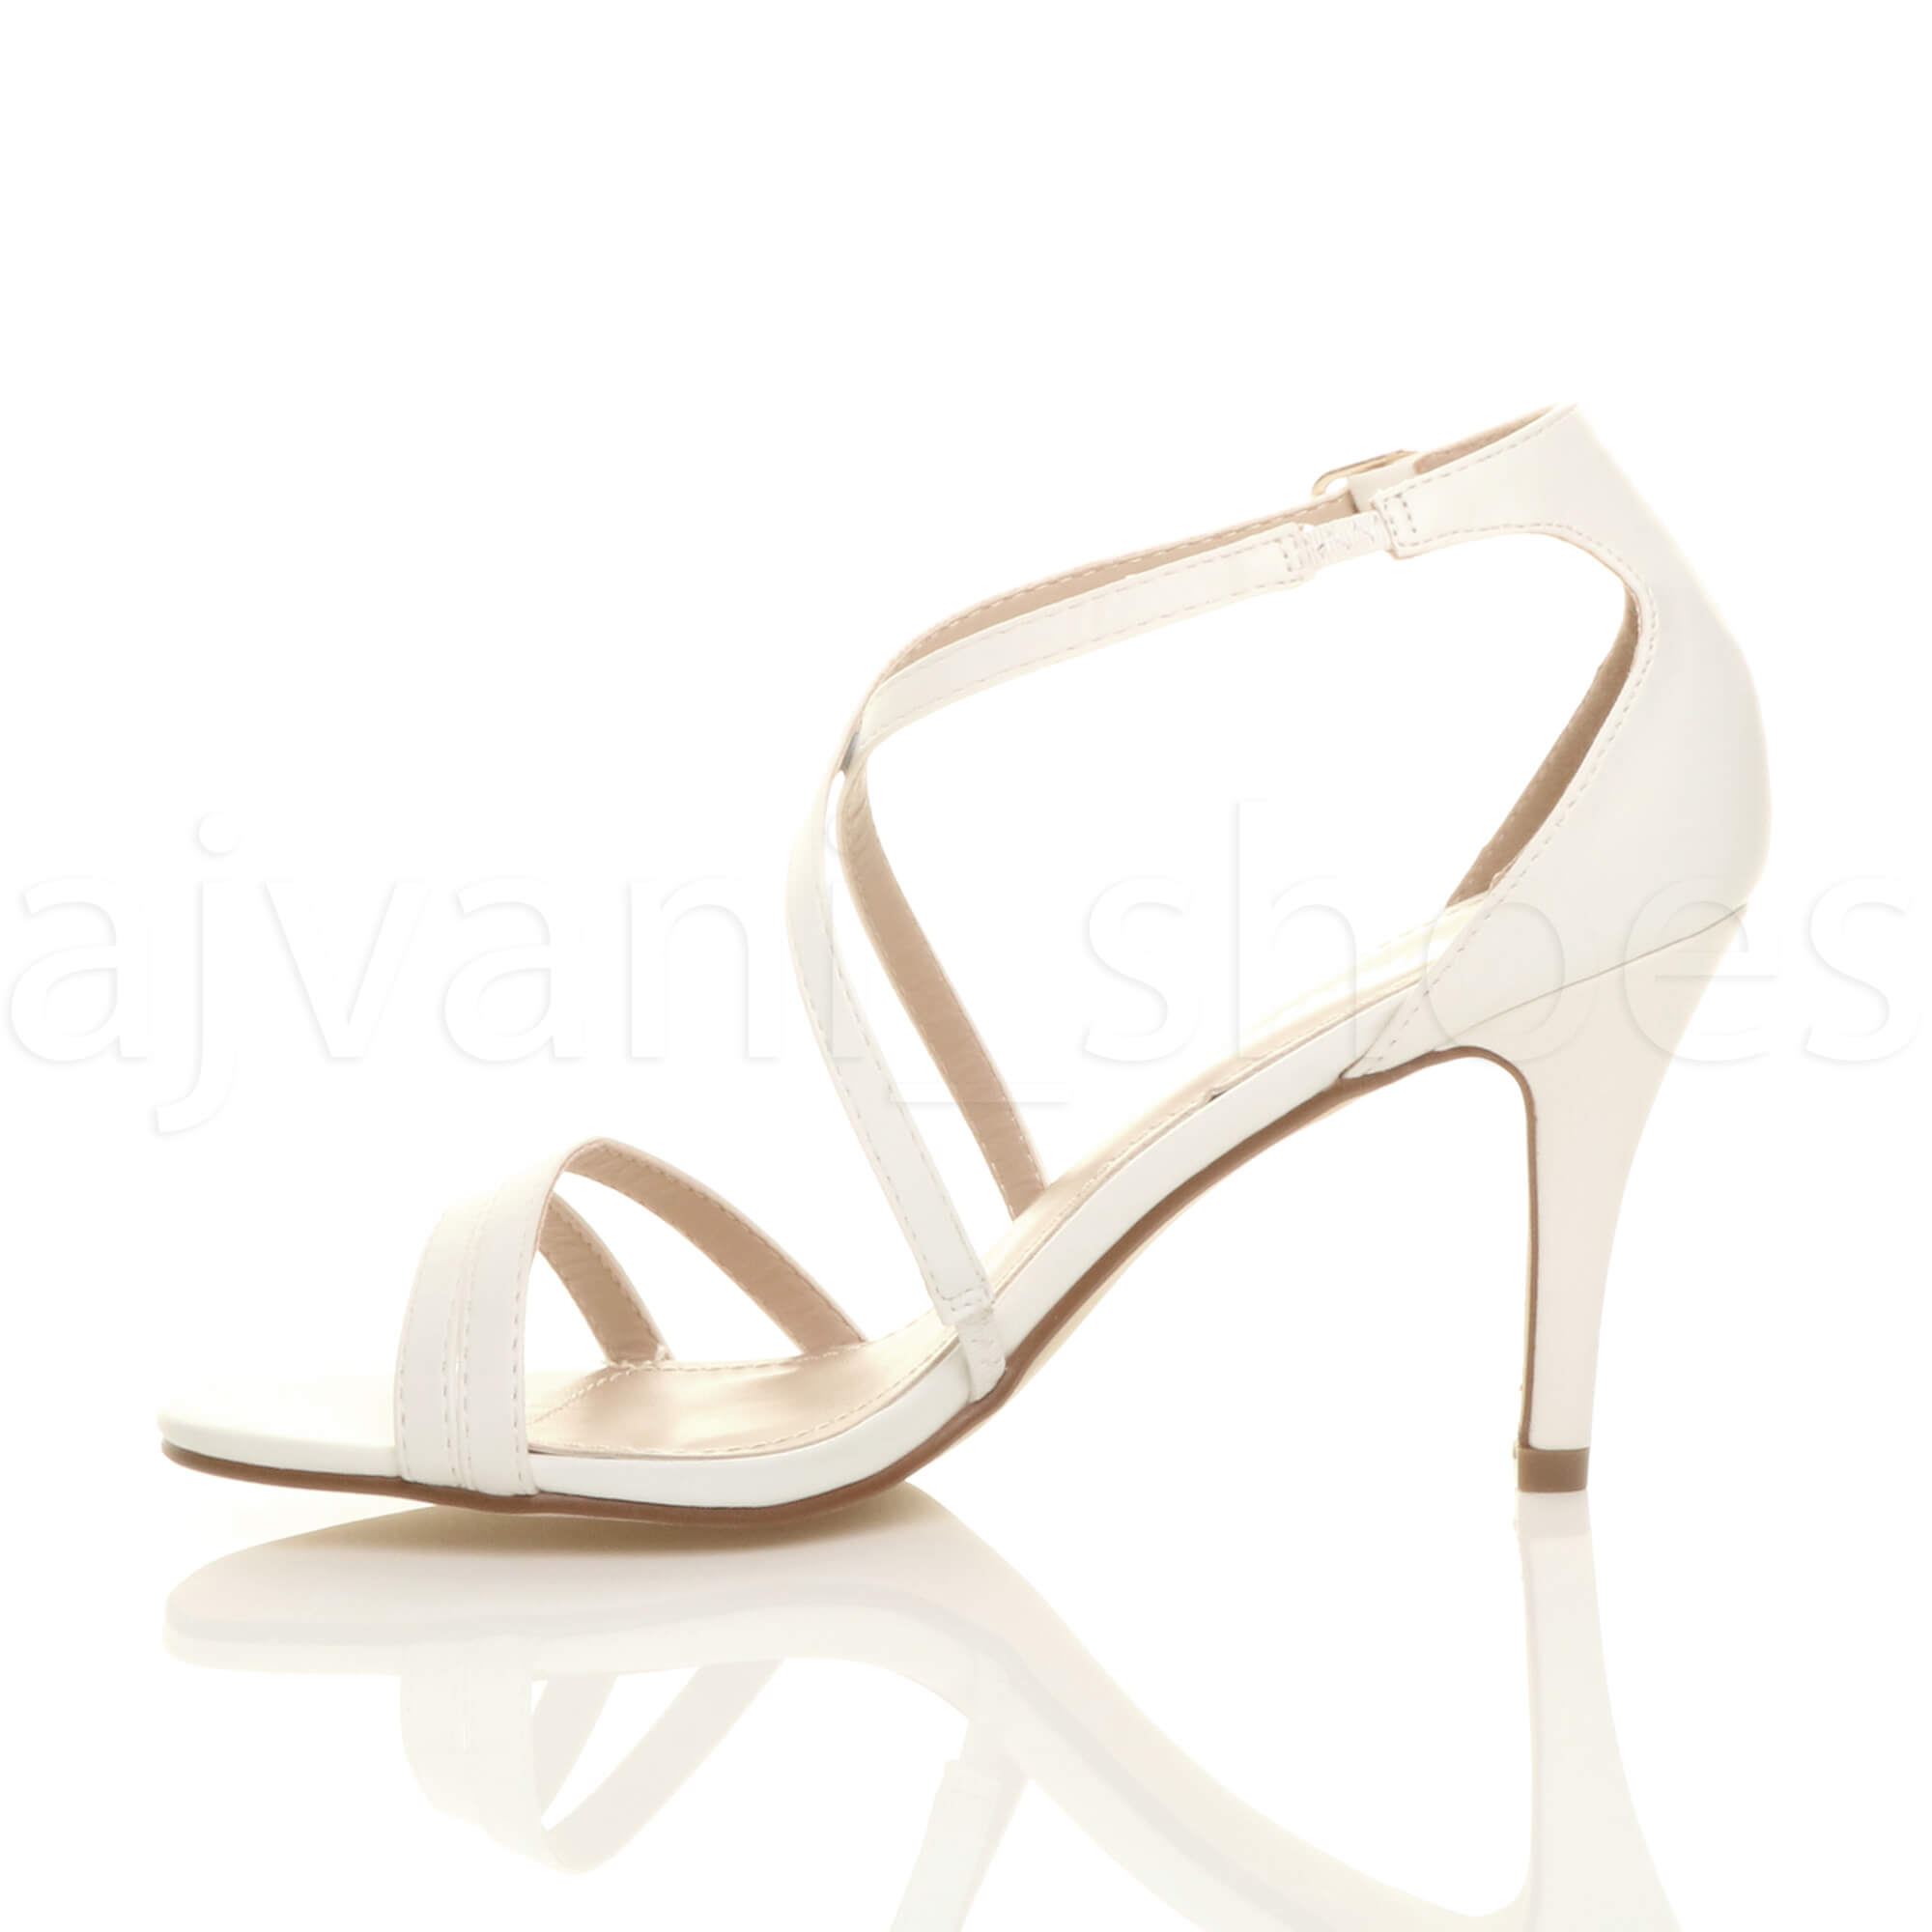 WOMENS-LADIES-MID-HIGH-HEEL-STRAPPY-CROSSOVER-WEDDING-PROM-SANDALS-SHOES-SIZE thumbnail 165